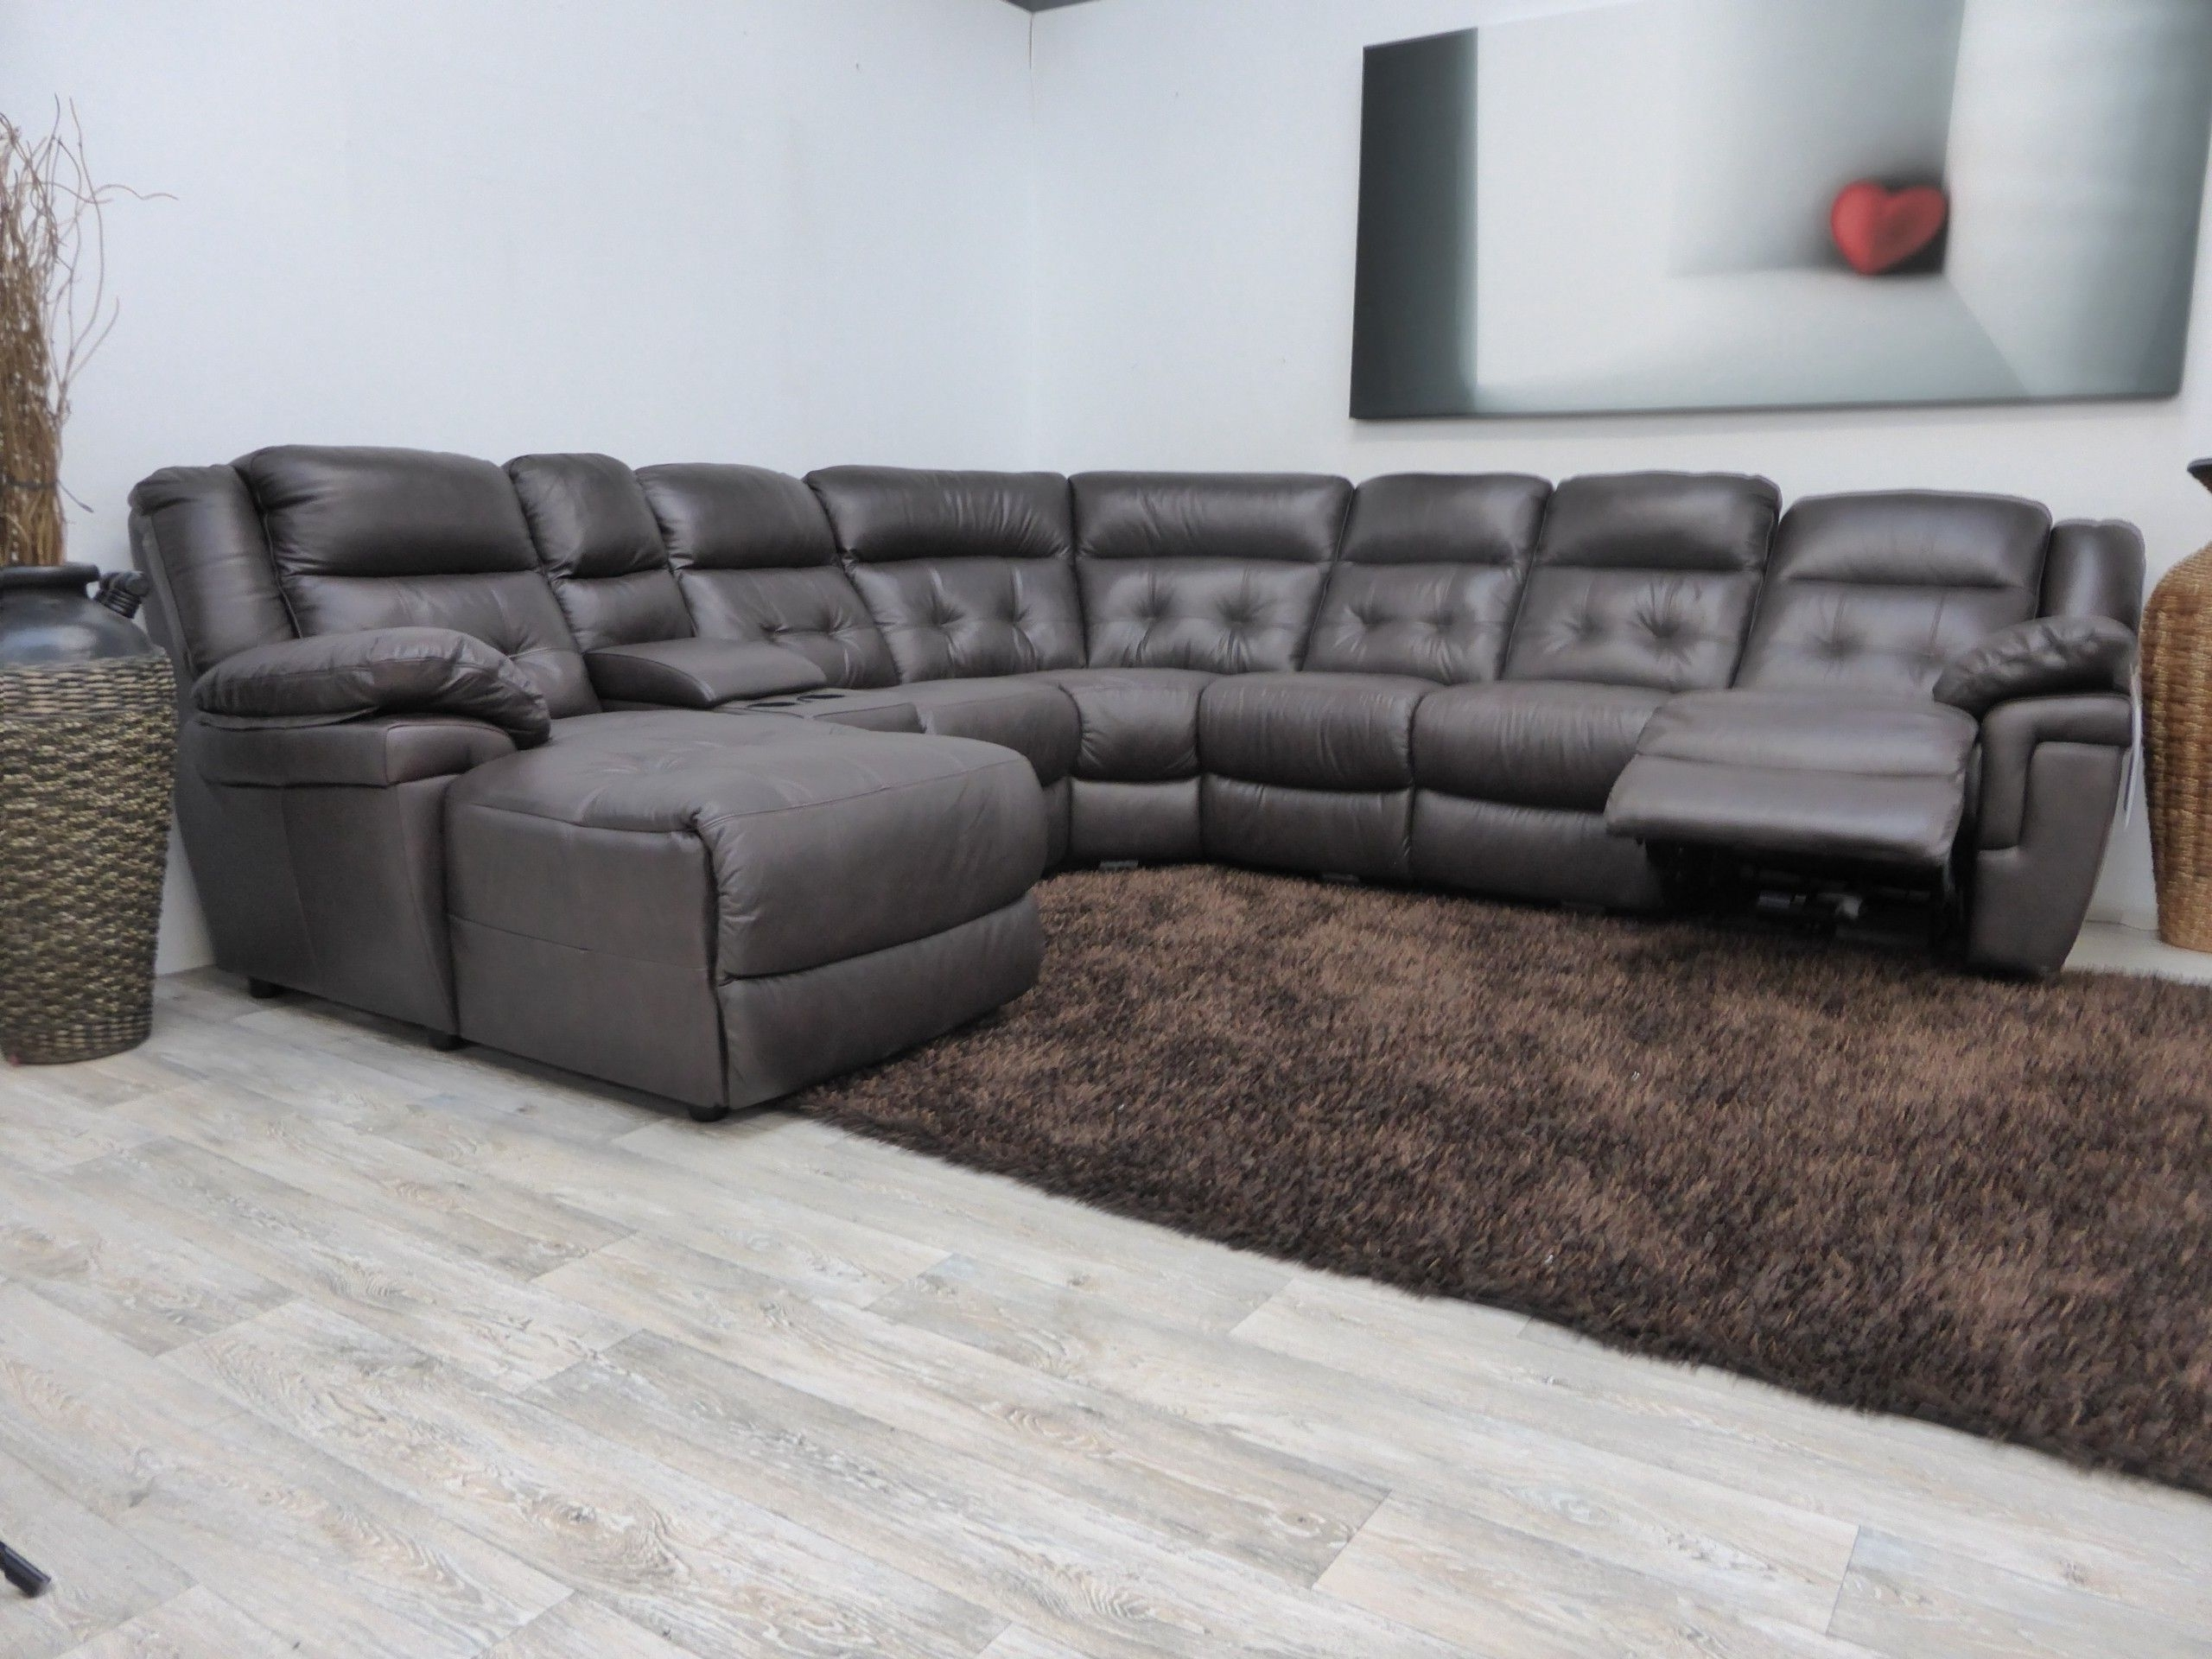 Most Current L Shaped Sofa Design With Black Upholstery Faux Leather Sofa Inside Lazy Boy Sectional Sofas (View 8 of 15)